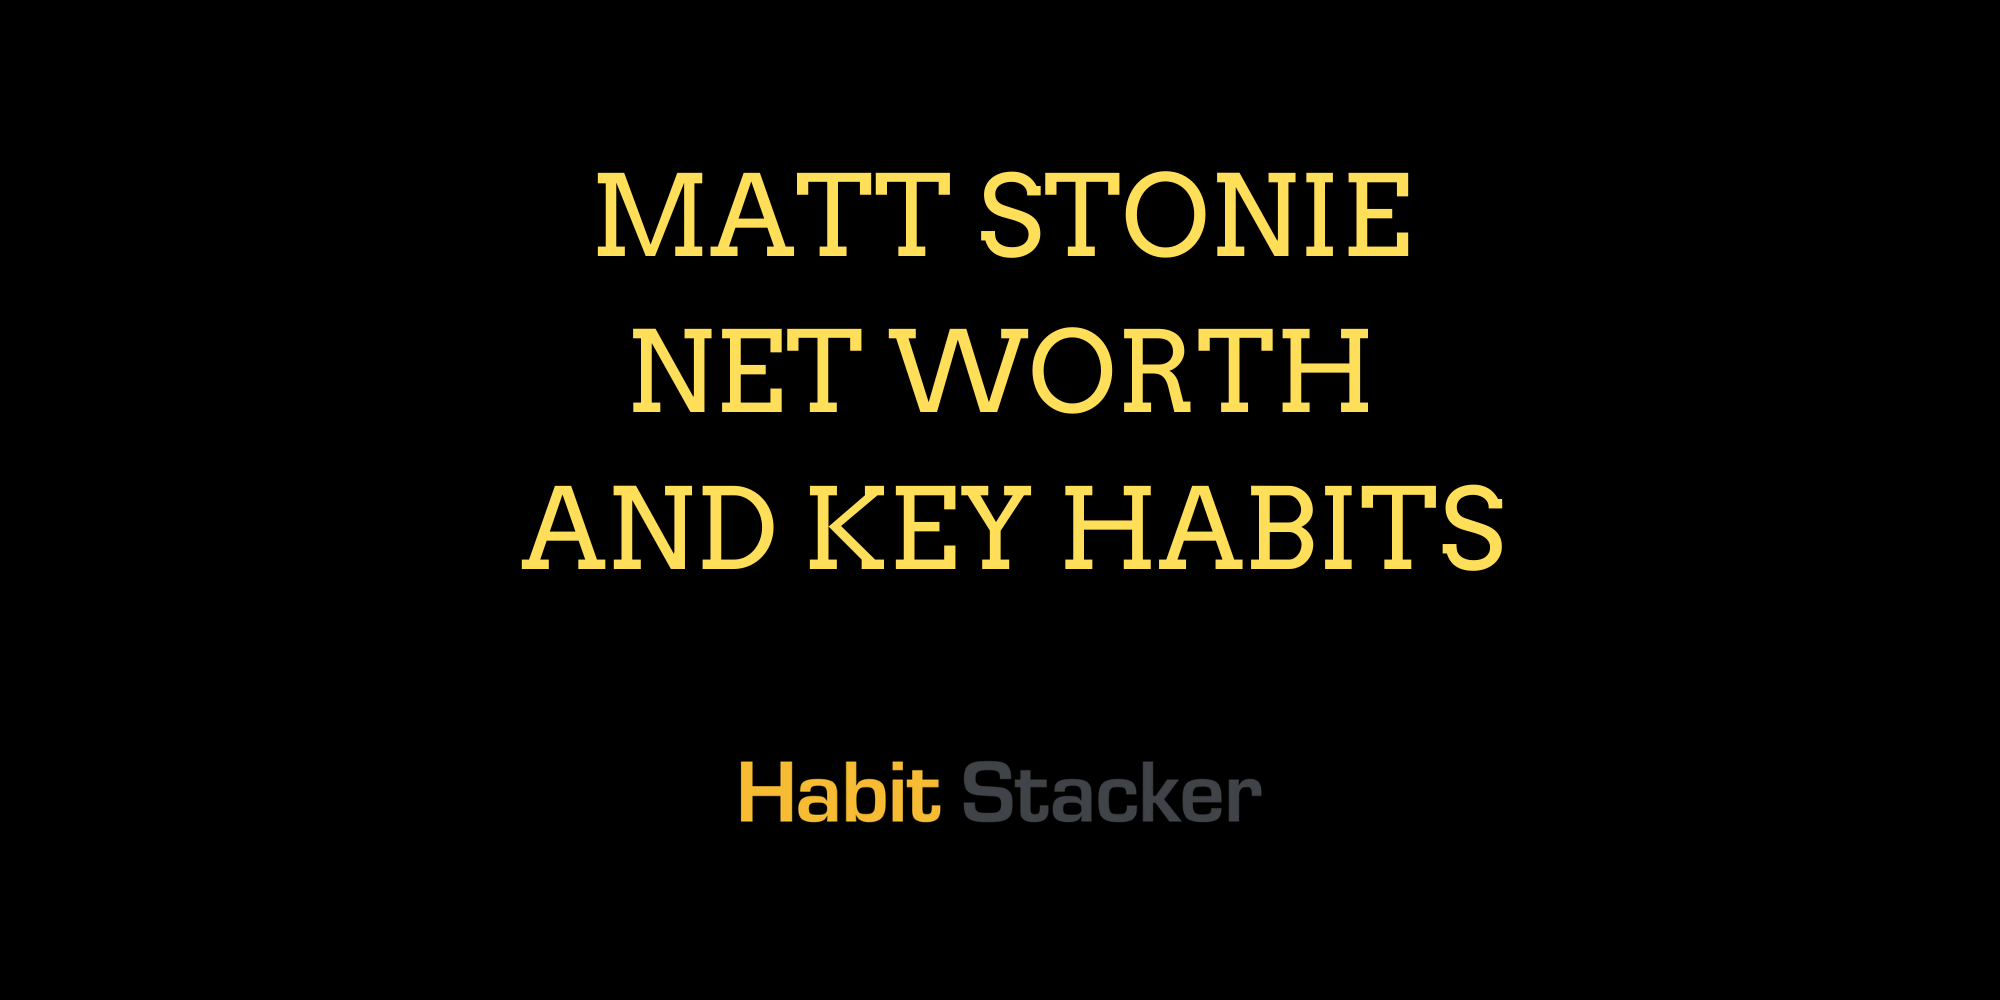 Matt Stonie Net Worth and Key Habits